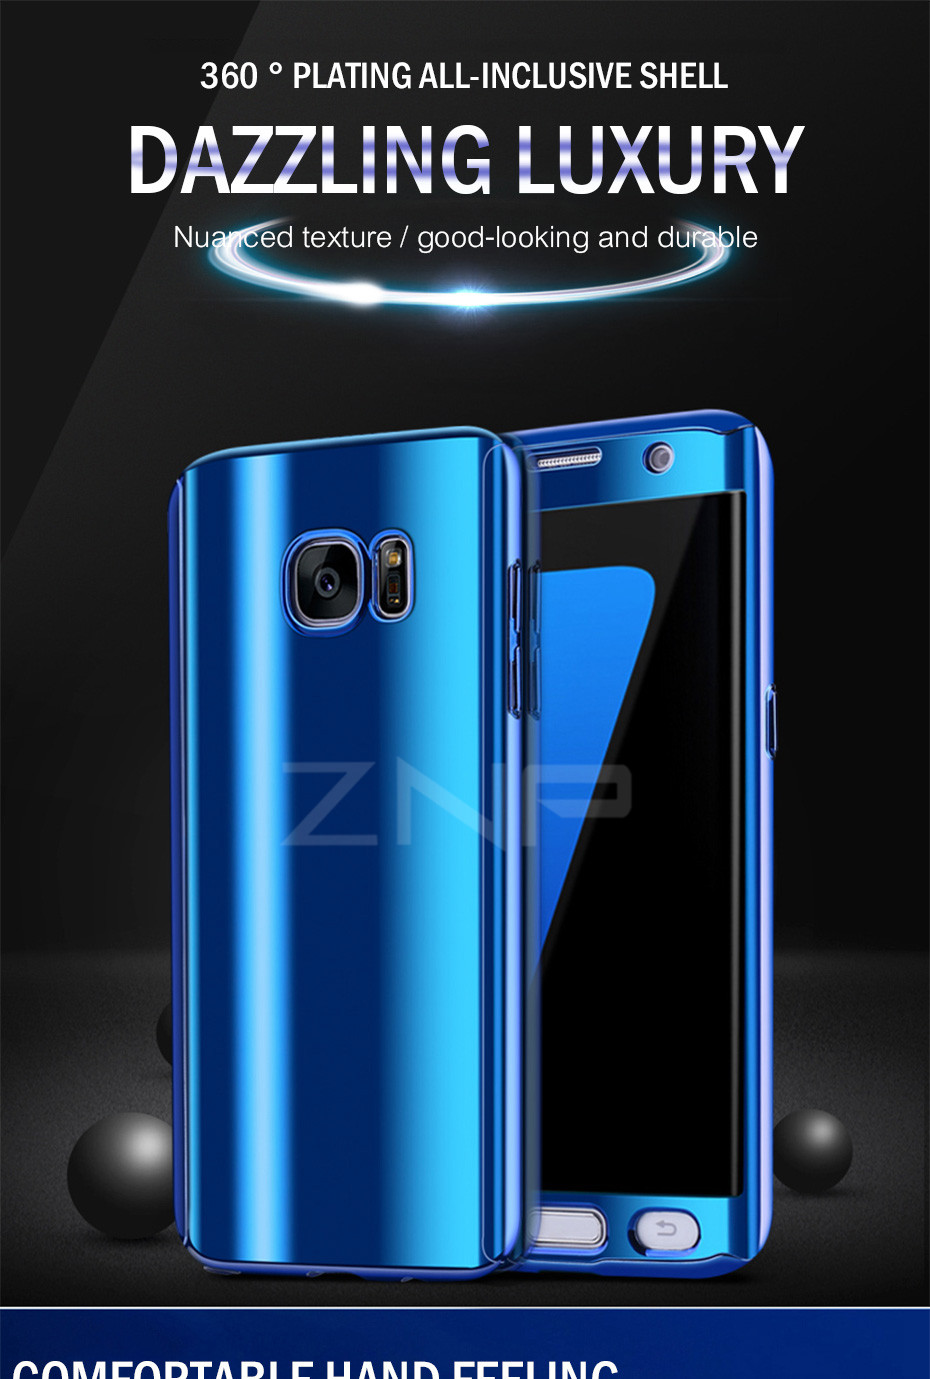 ZNP Luxury 360 Full Phone Case For Samsung Galaxy S9 S8 Plus Note 8 Bling Mirror Cover Cases For Samsung S7 Edge S9 S8 S7 Case 1